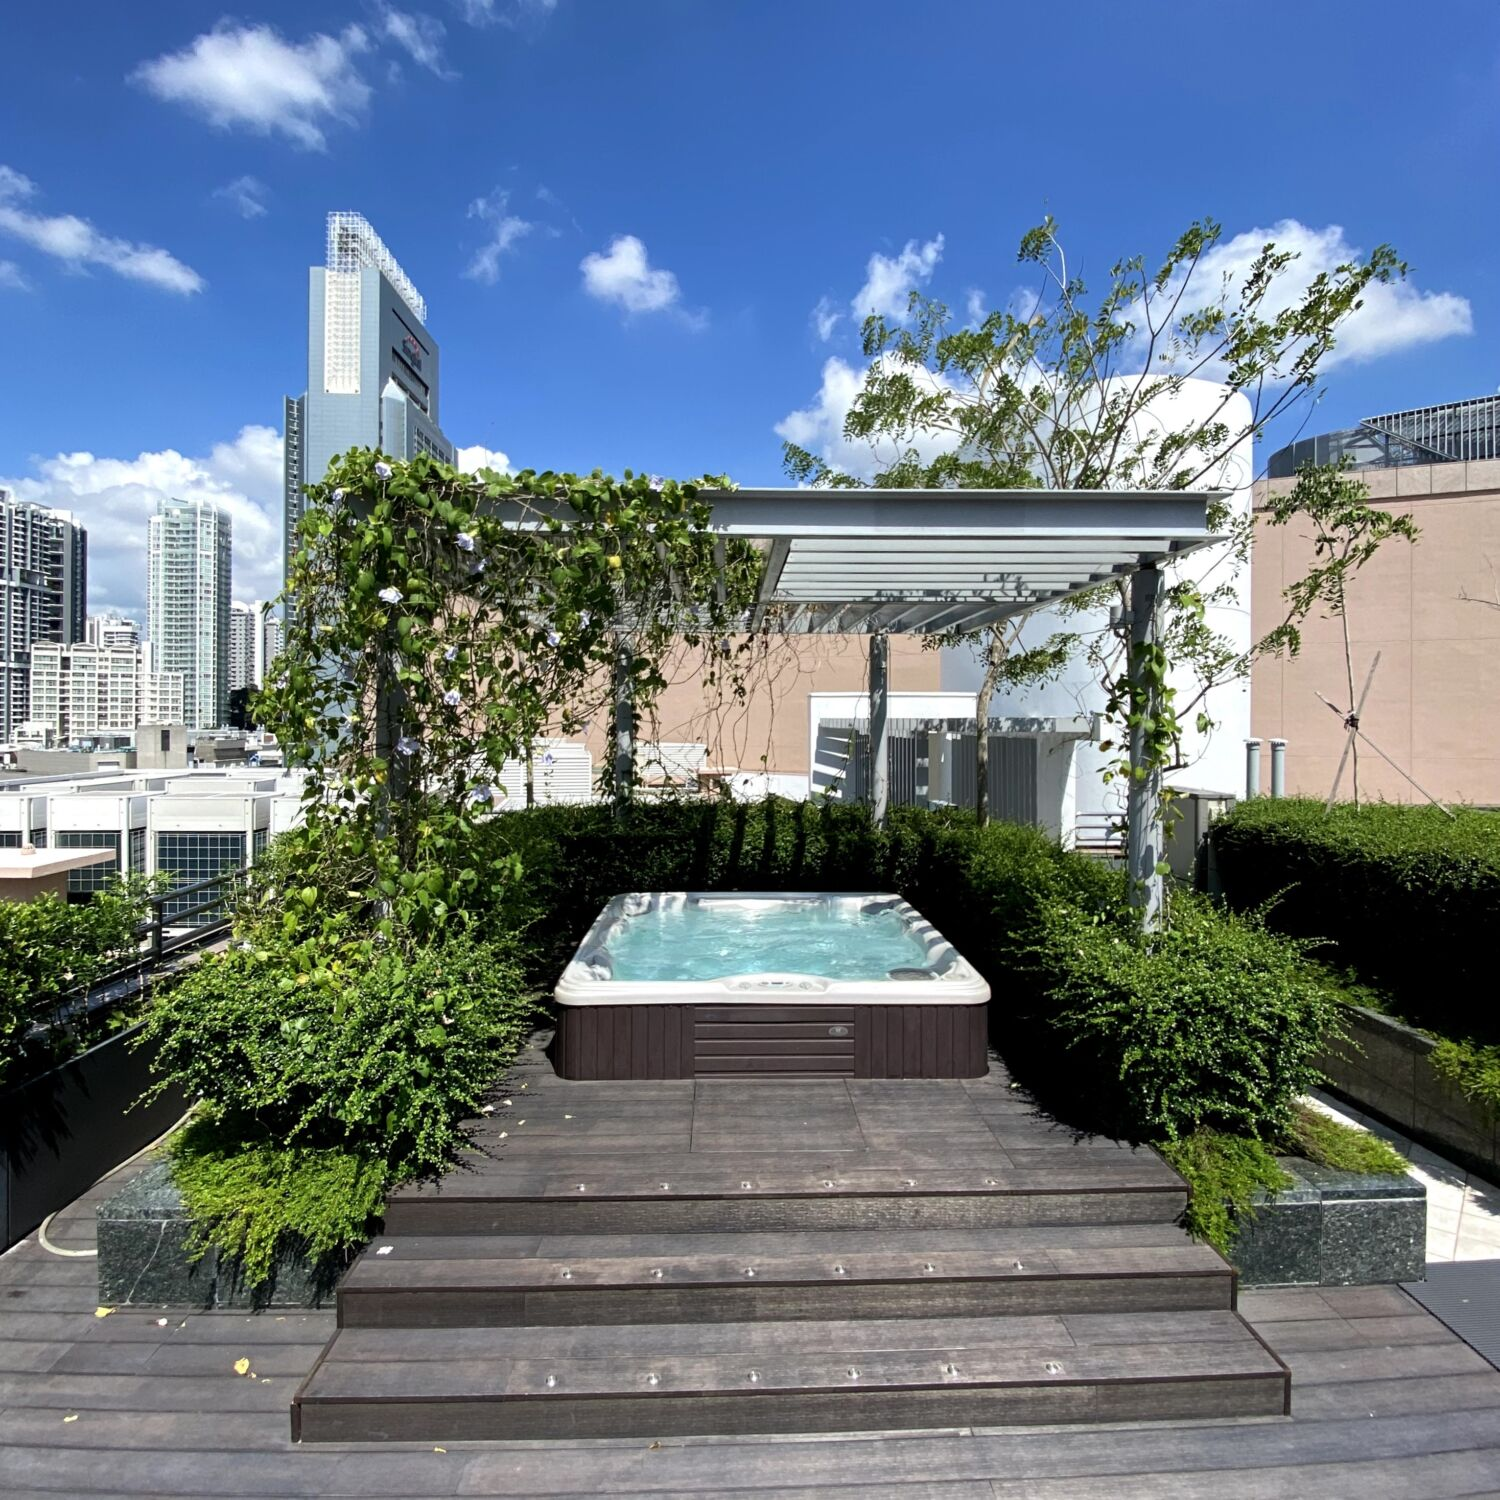 Winsland Serviced Suites by Lanson Place Rooftop Jacuzzi